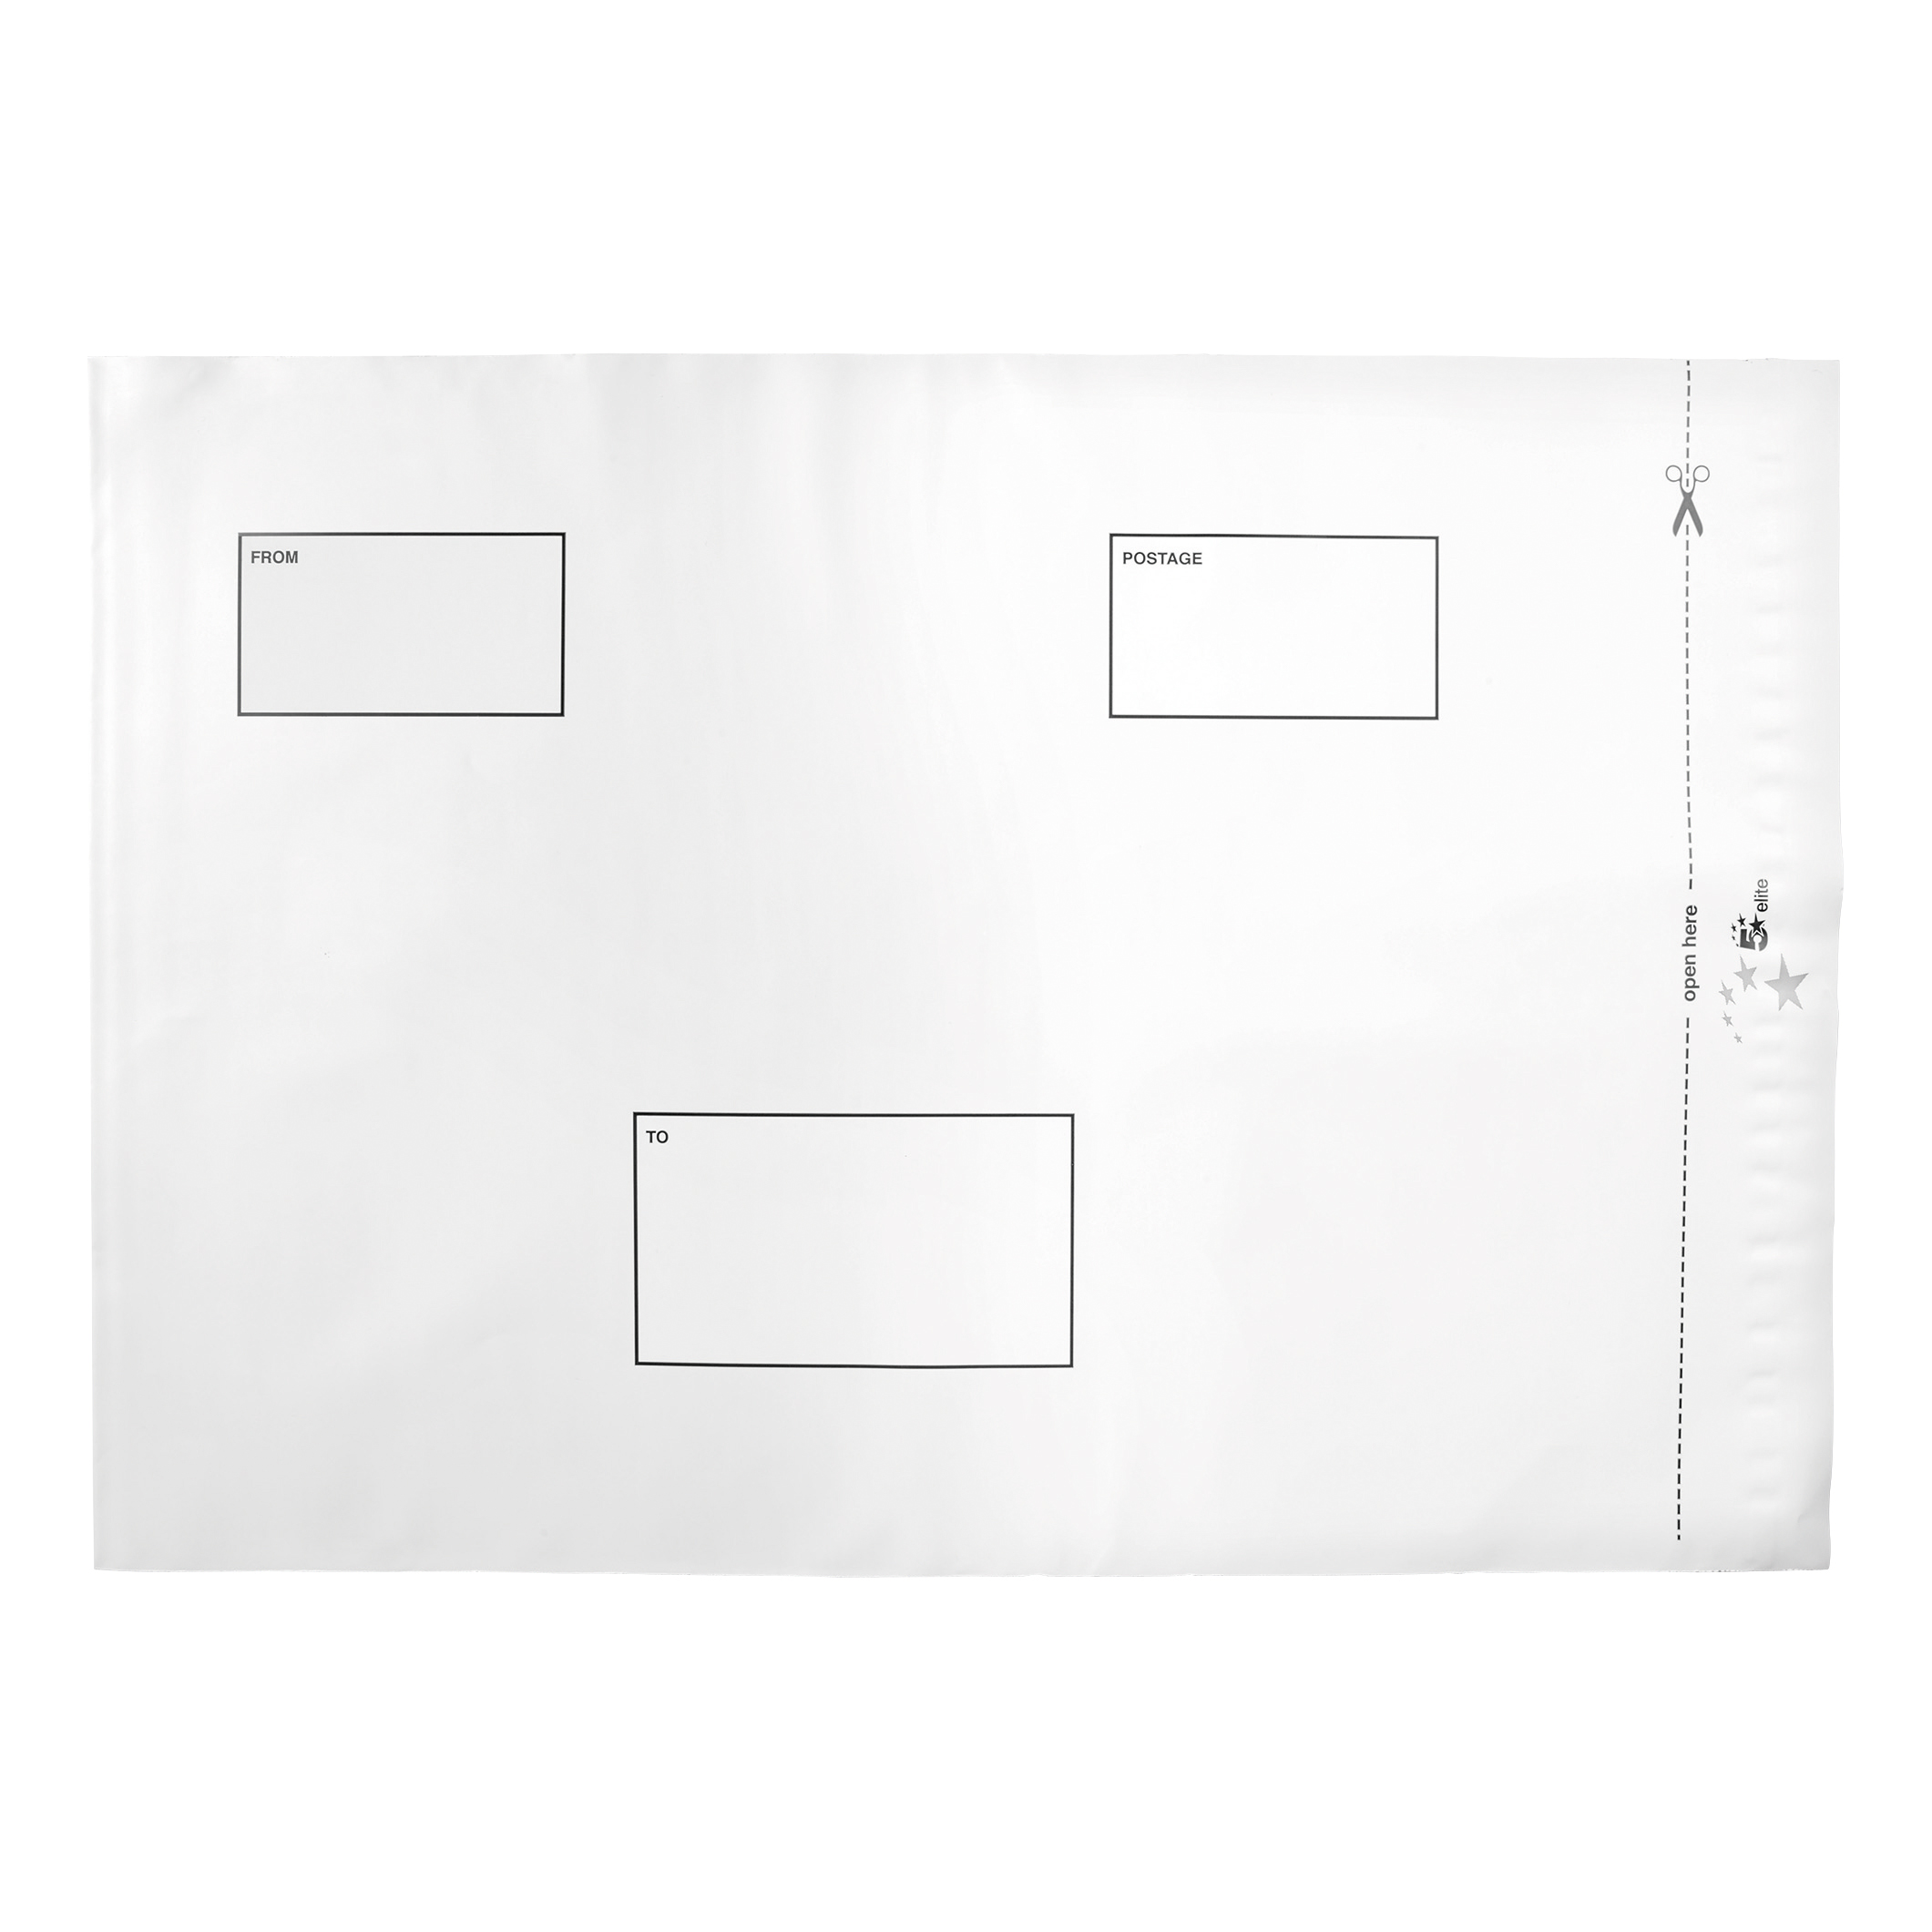 Polythene Envelopes 5 Star Elite Envelopes ExtraStrong Waterproof Polythene Peel & Seal Opaque 335x435mm&50mm Flap [Pack 100]